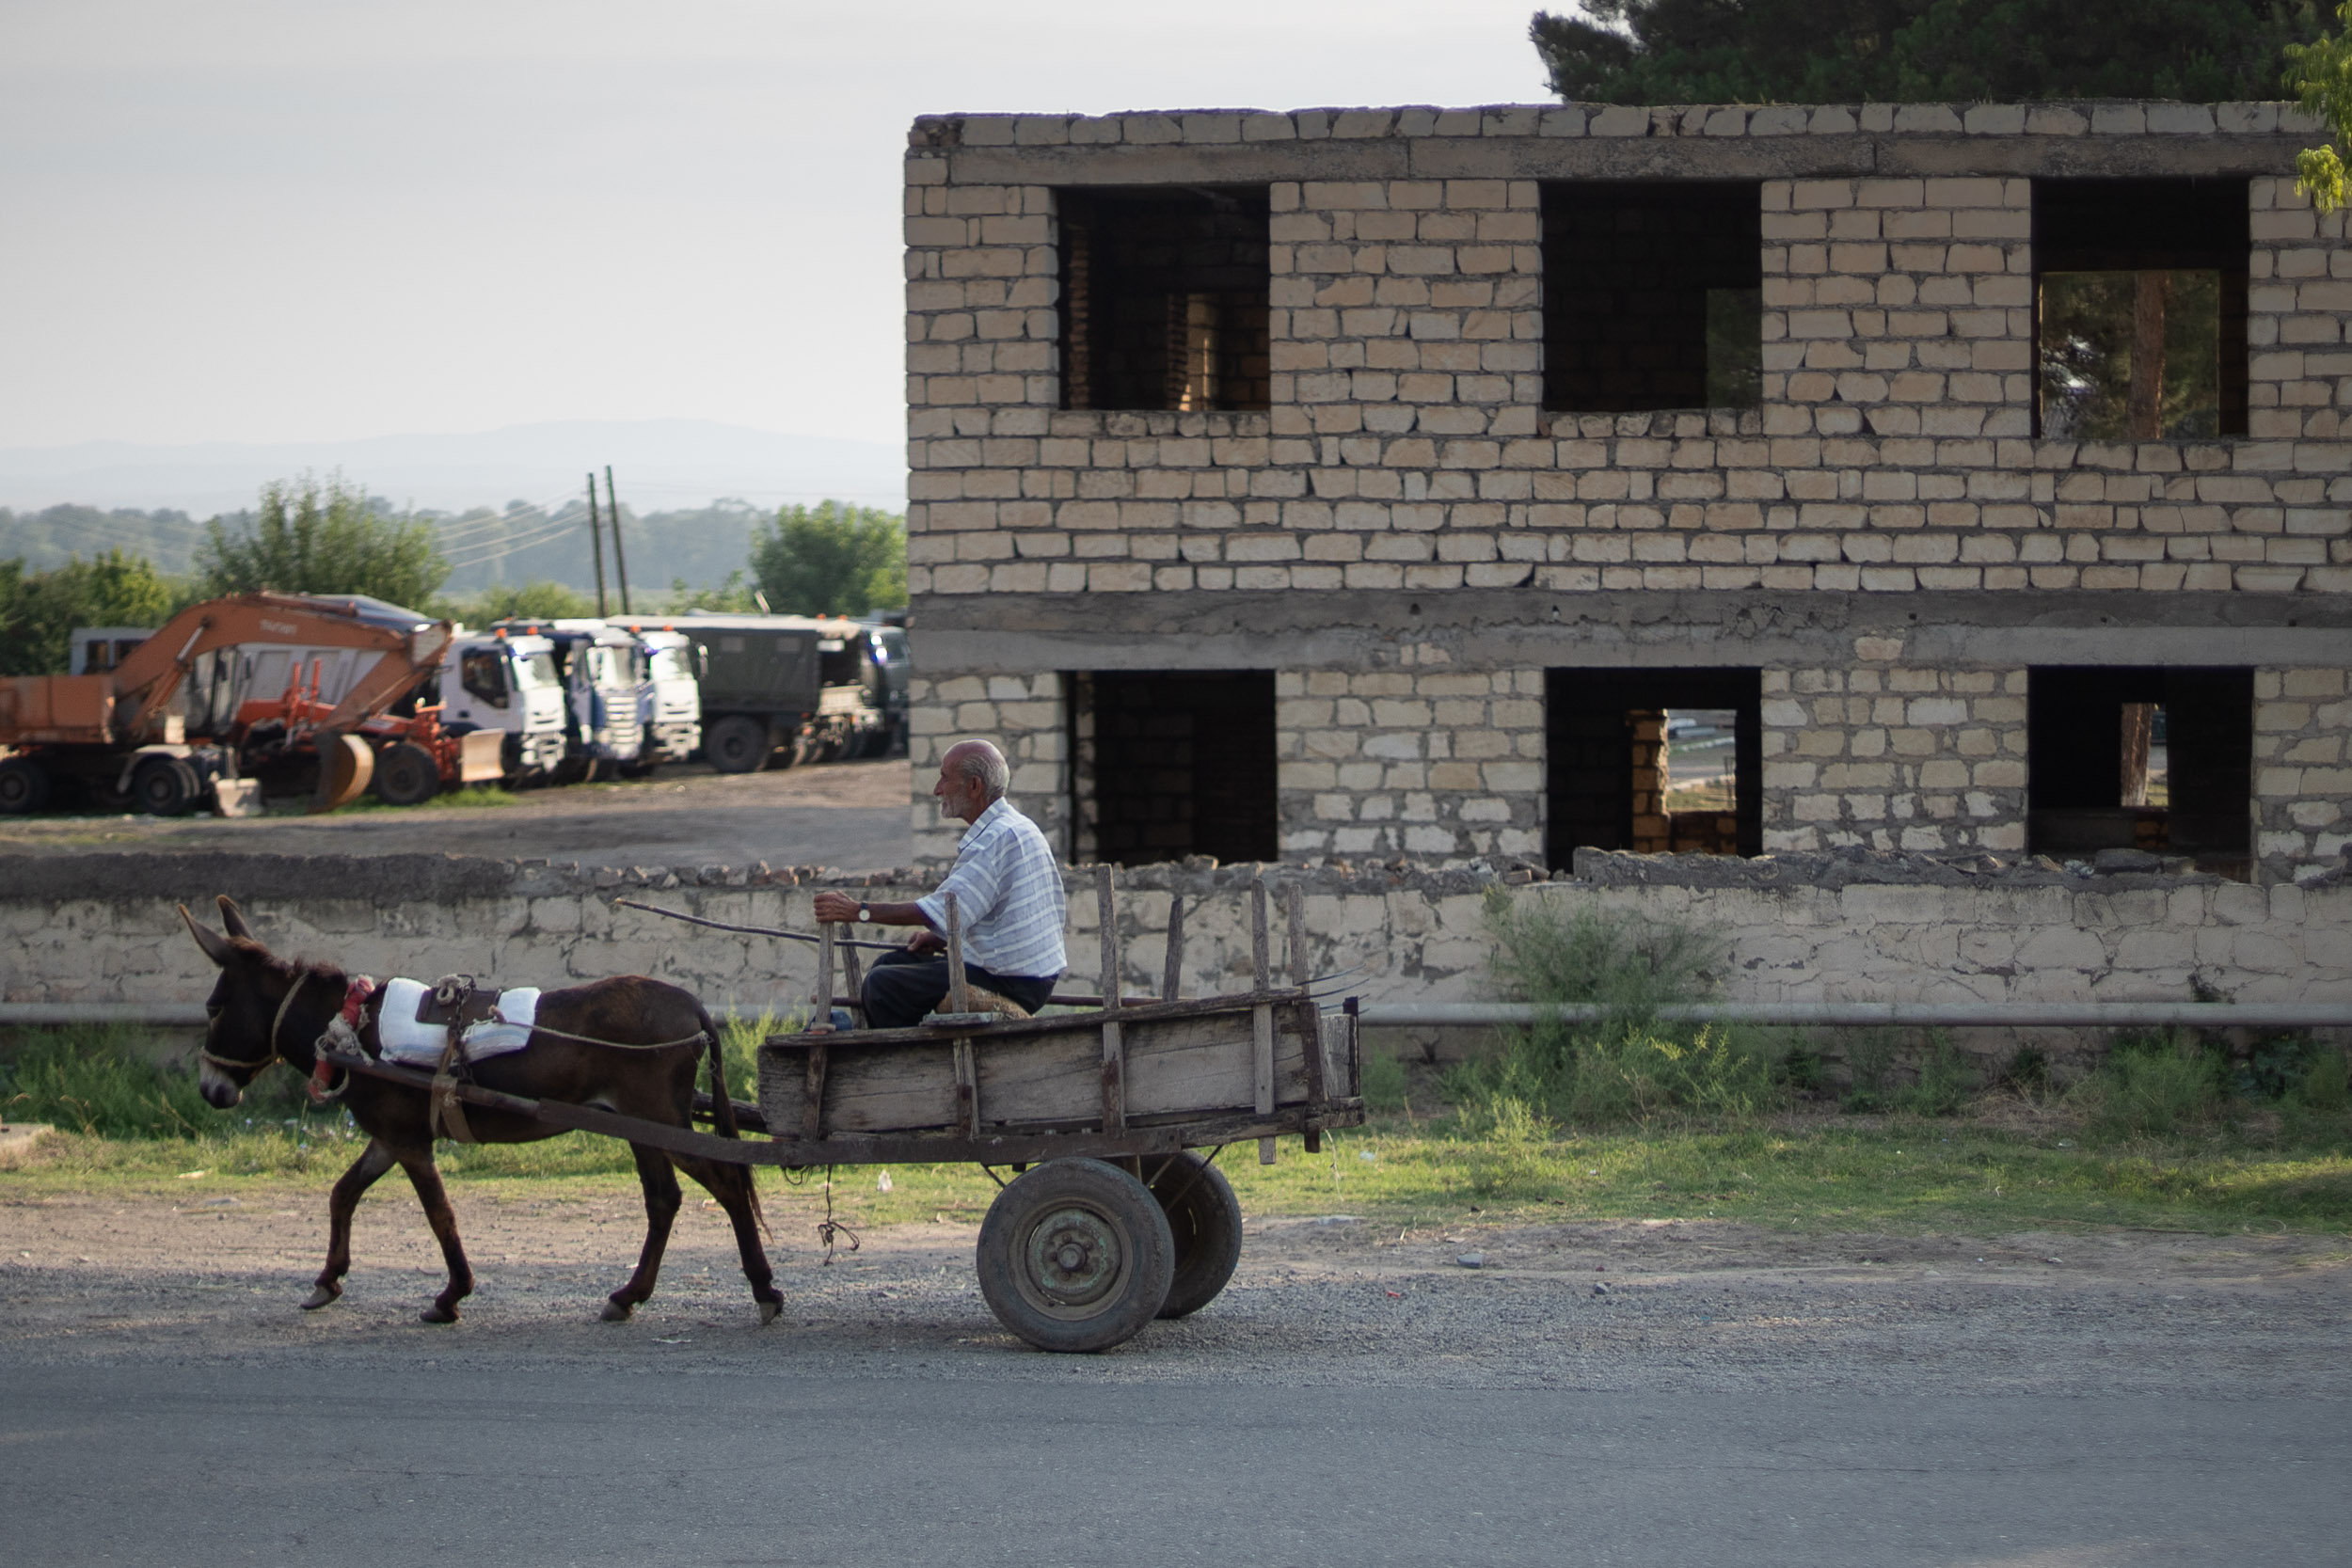 Azerbajian horse drawn cart